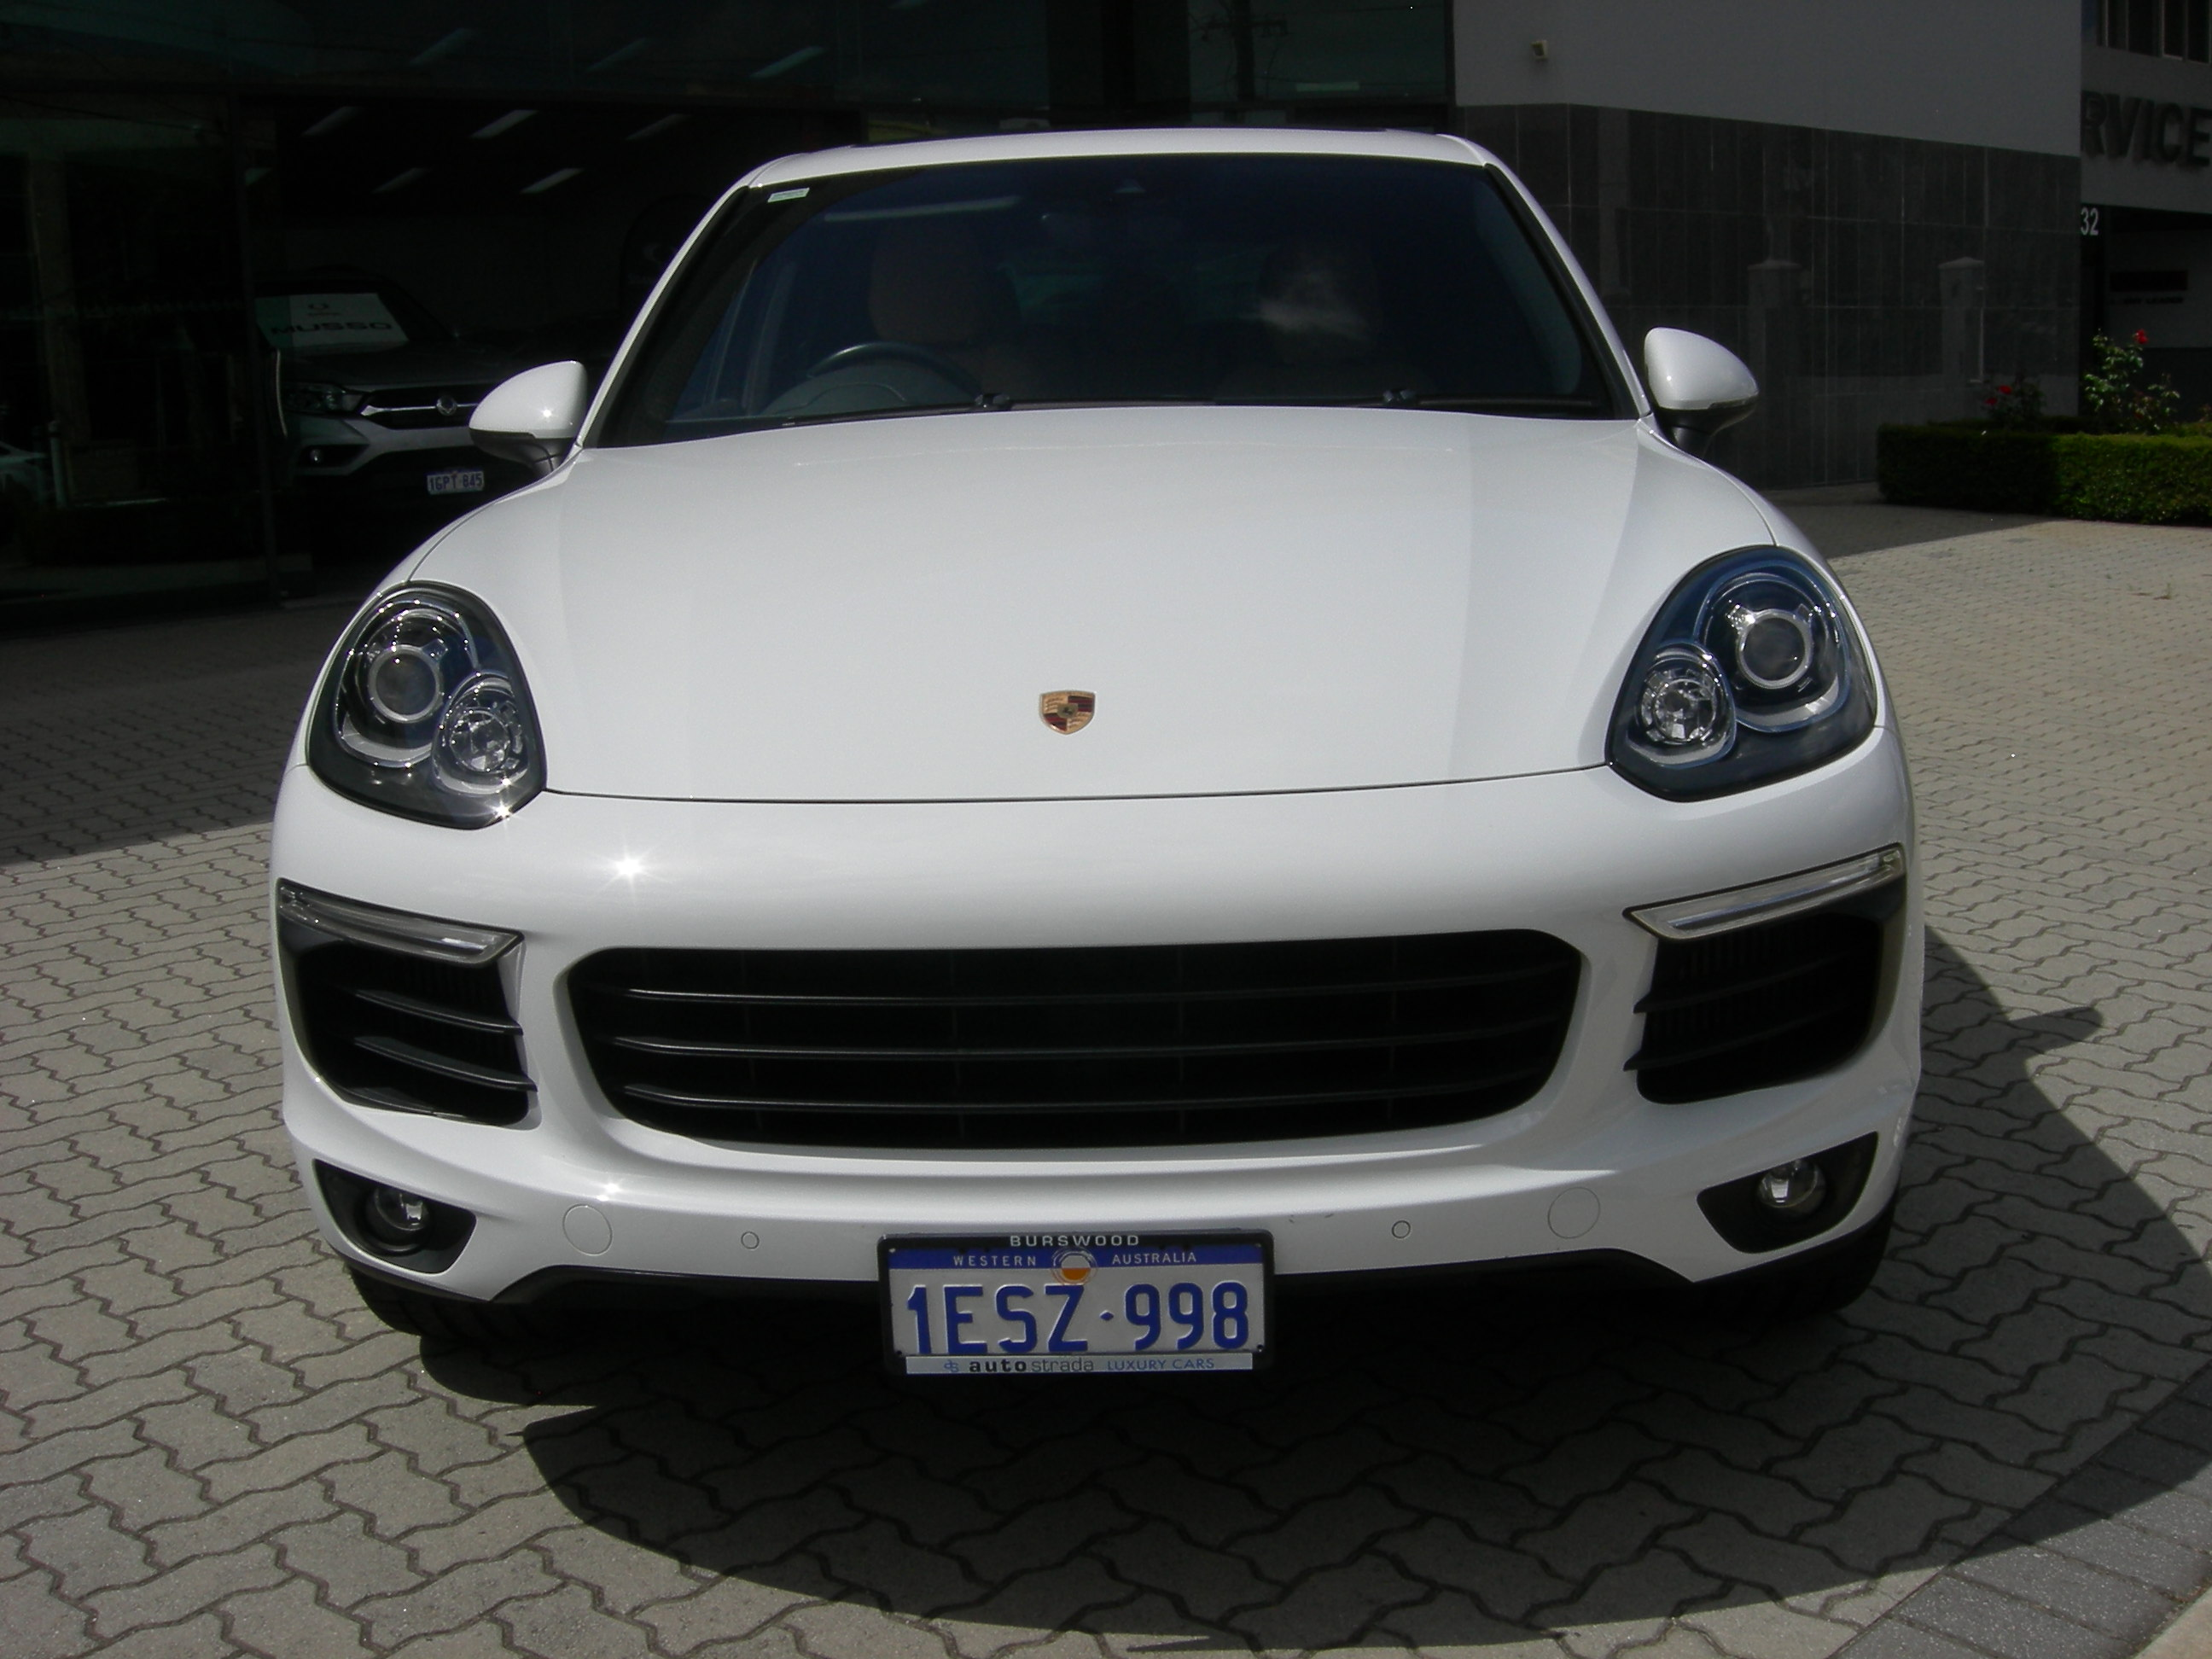 Porsche Cayenne for Sale in Perth